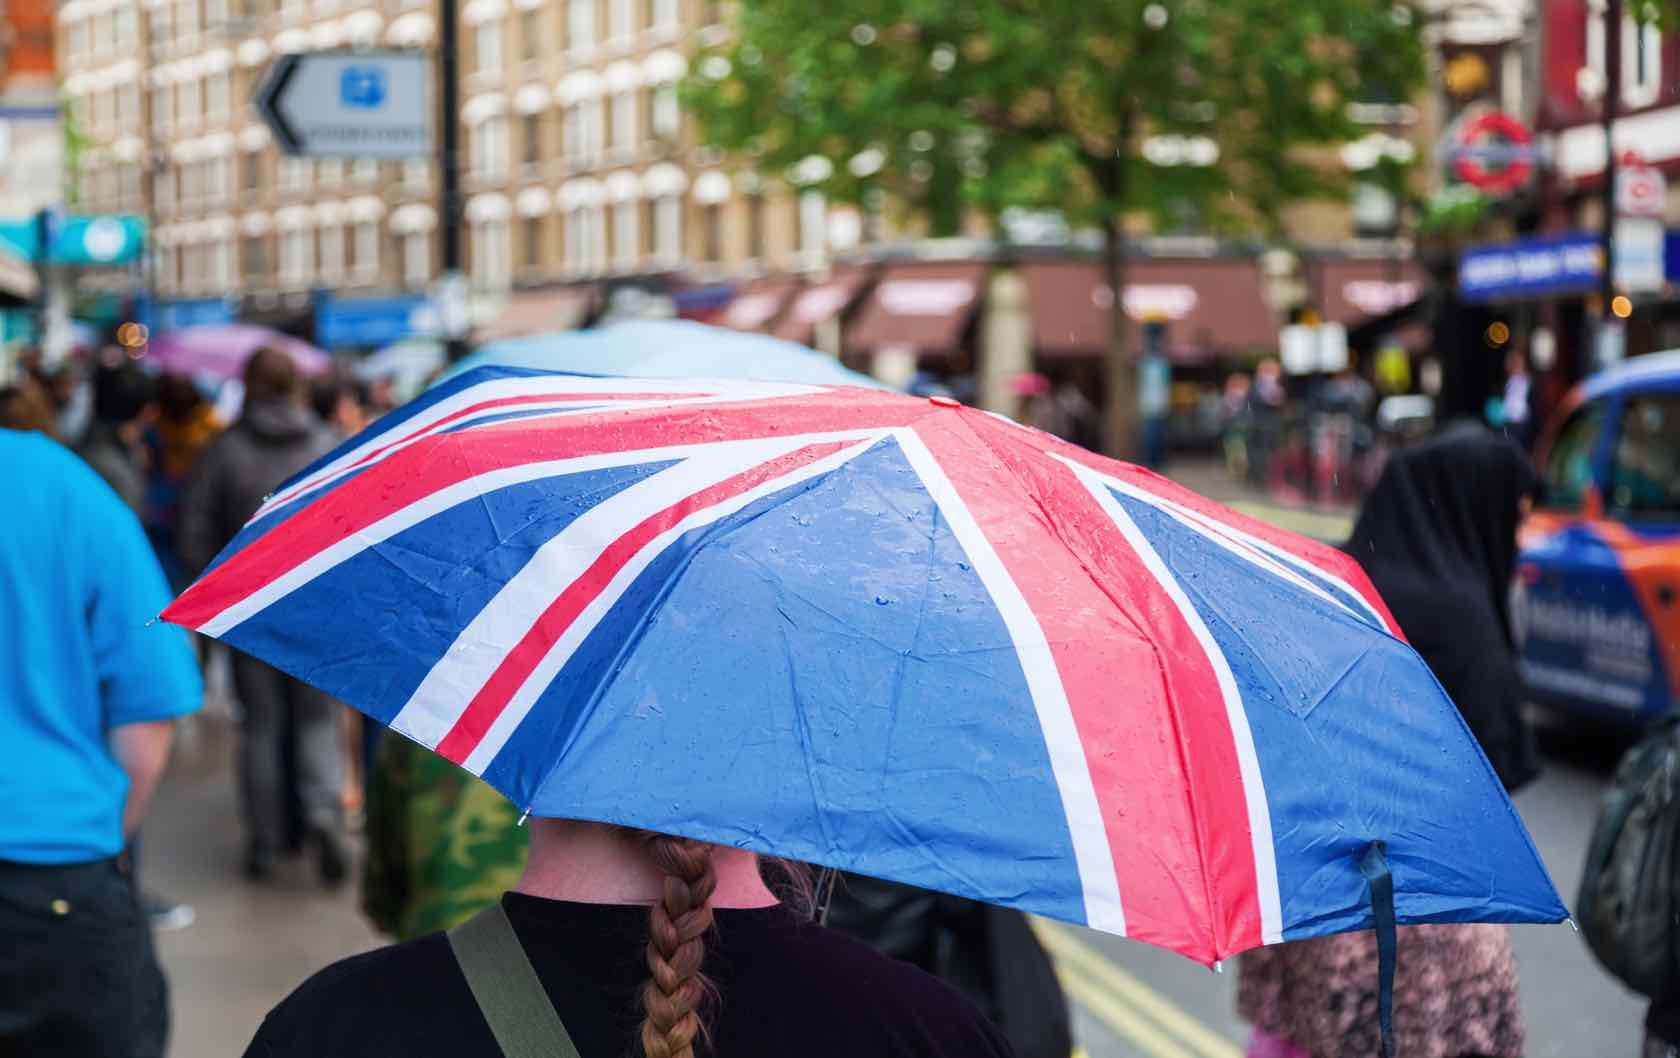 Here's what to do when it's Raining in London